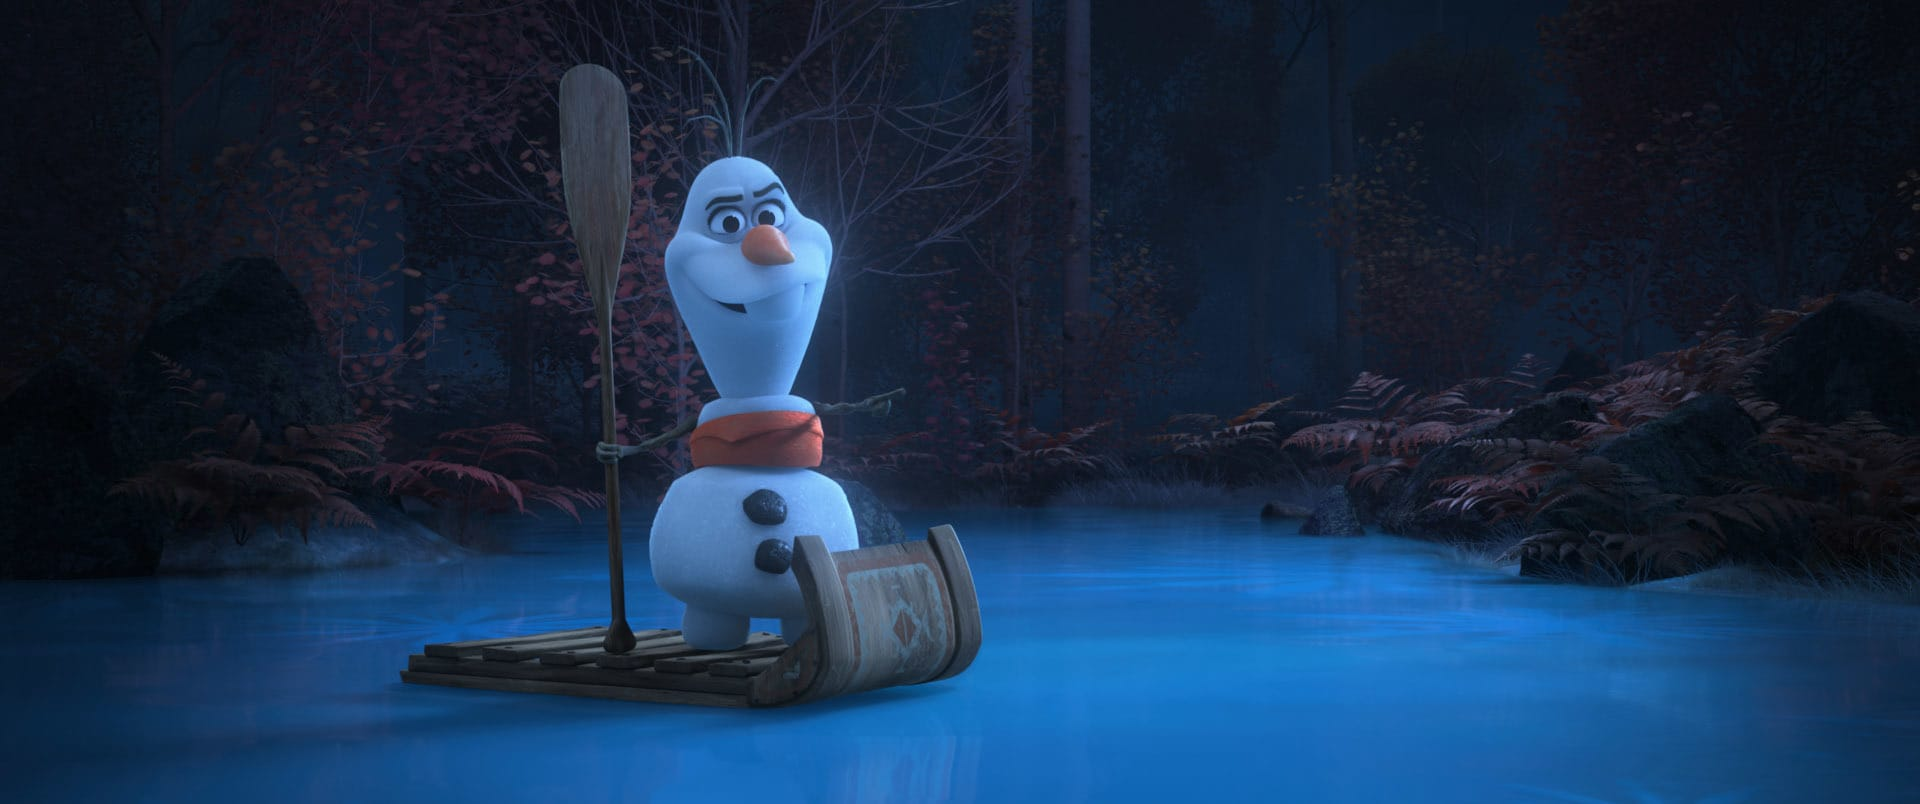 """In Walt Disney Animation Studios' new series of shorts """"Olaf Presents,"""" Olaf steps into the spotlight and goes from snowman to showman as he takes on the roles of producer, actor, costumer and set builder for his unique """"retelling"""" of five favorite Disney animated tales including """"Moana."""" In the short, the versatile snowman appears as Moana, among other characters. Debuting exclusively on Disney+ Nov. 12, """"Olaf Presents"""" features the voice of Josh Gad as Olaf. Disney animator Hyrum Osmond directs, and Jennifer Newfield produces. © 2021 Disney. All Rights Reserved."""